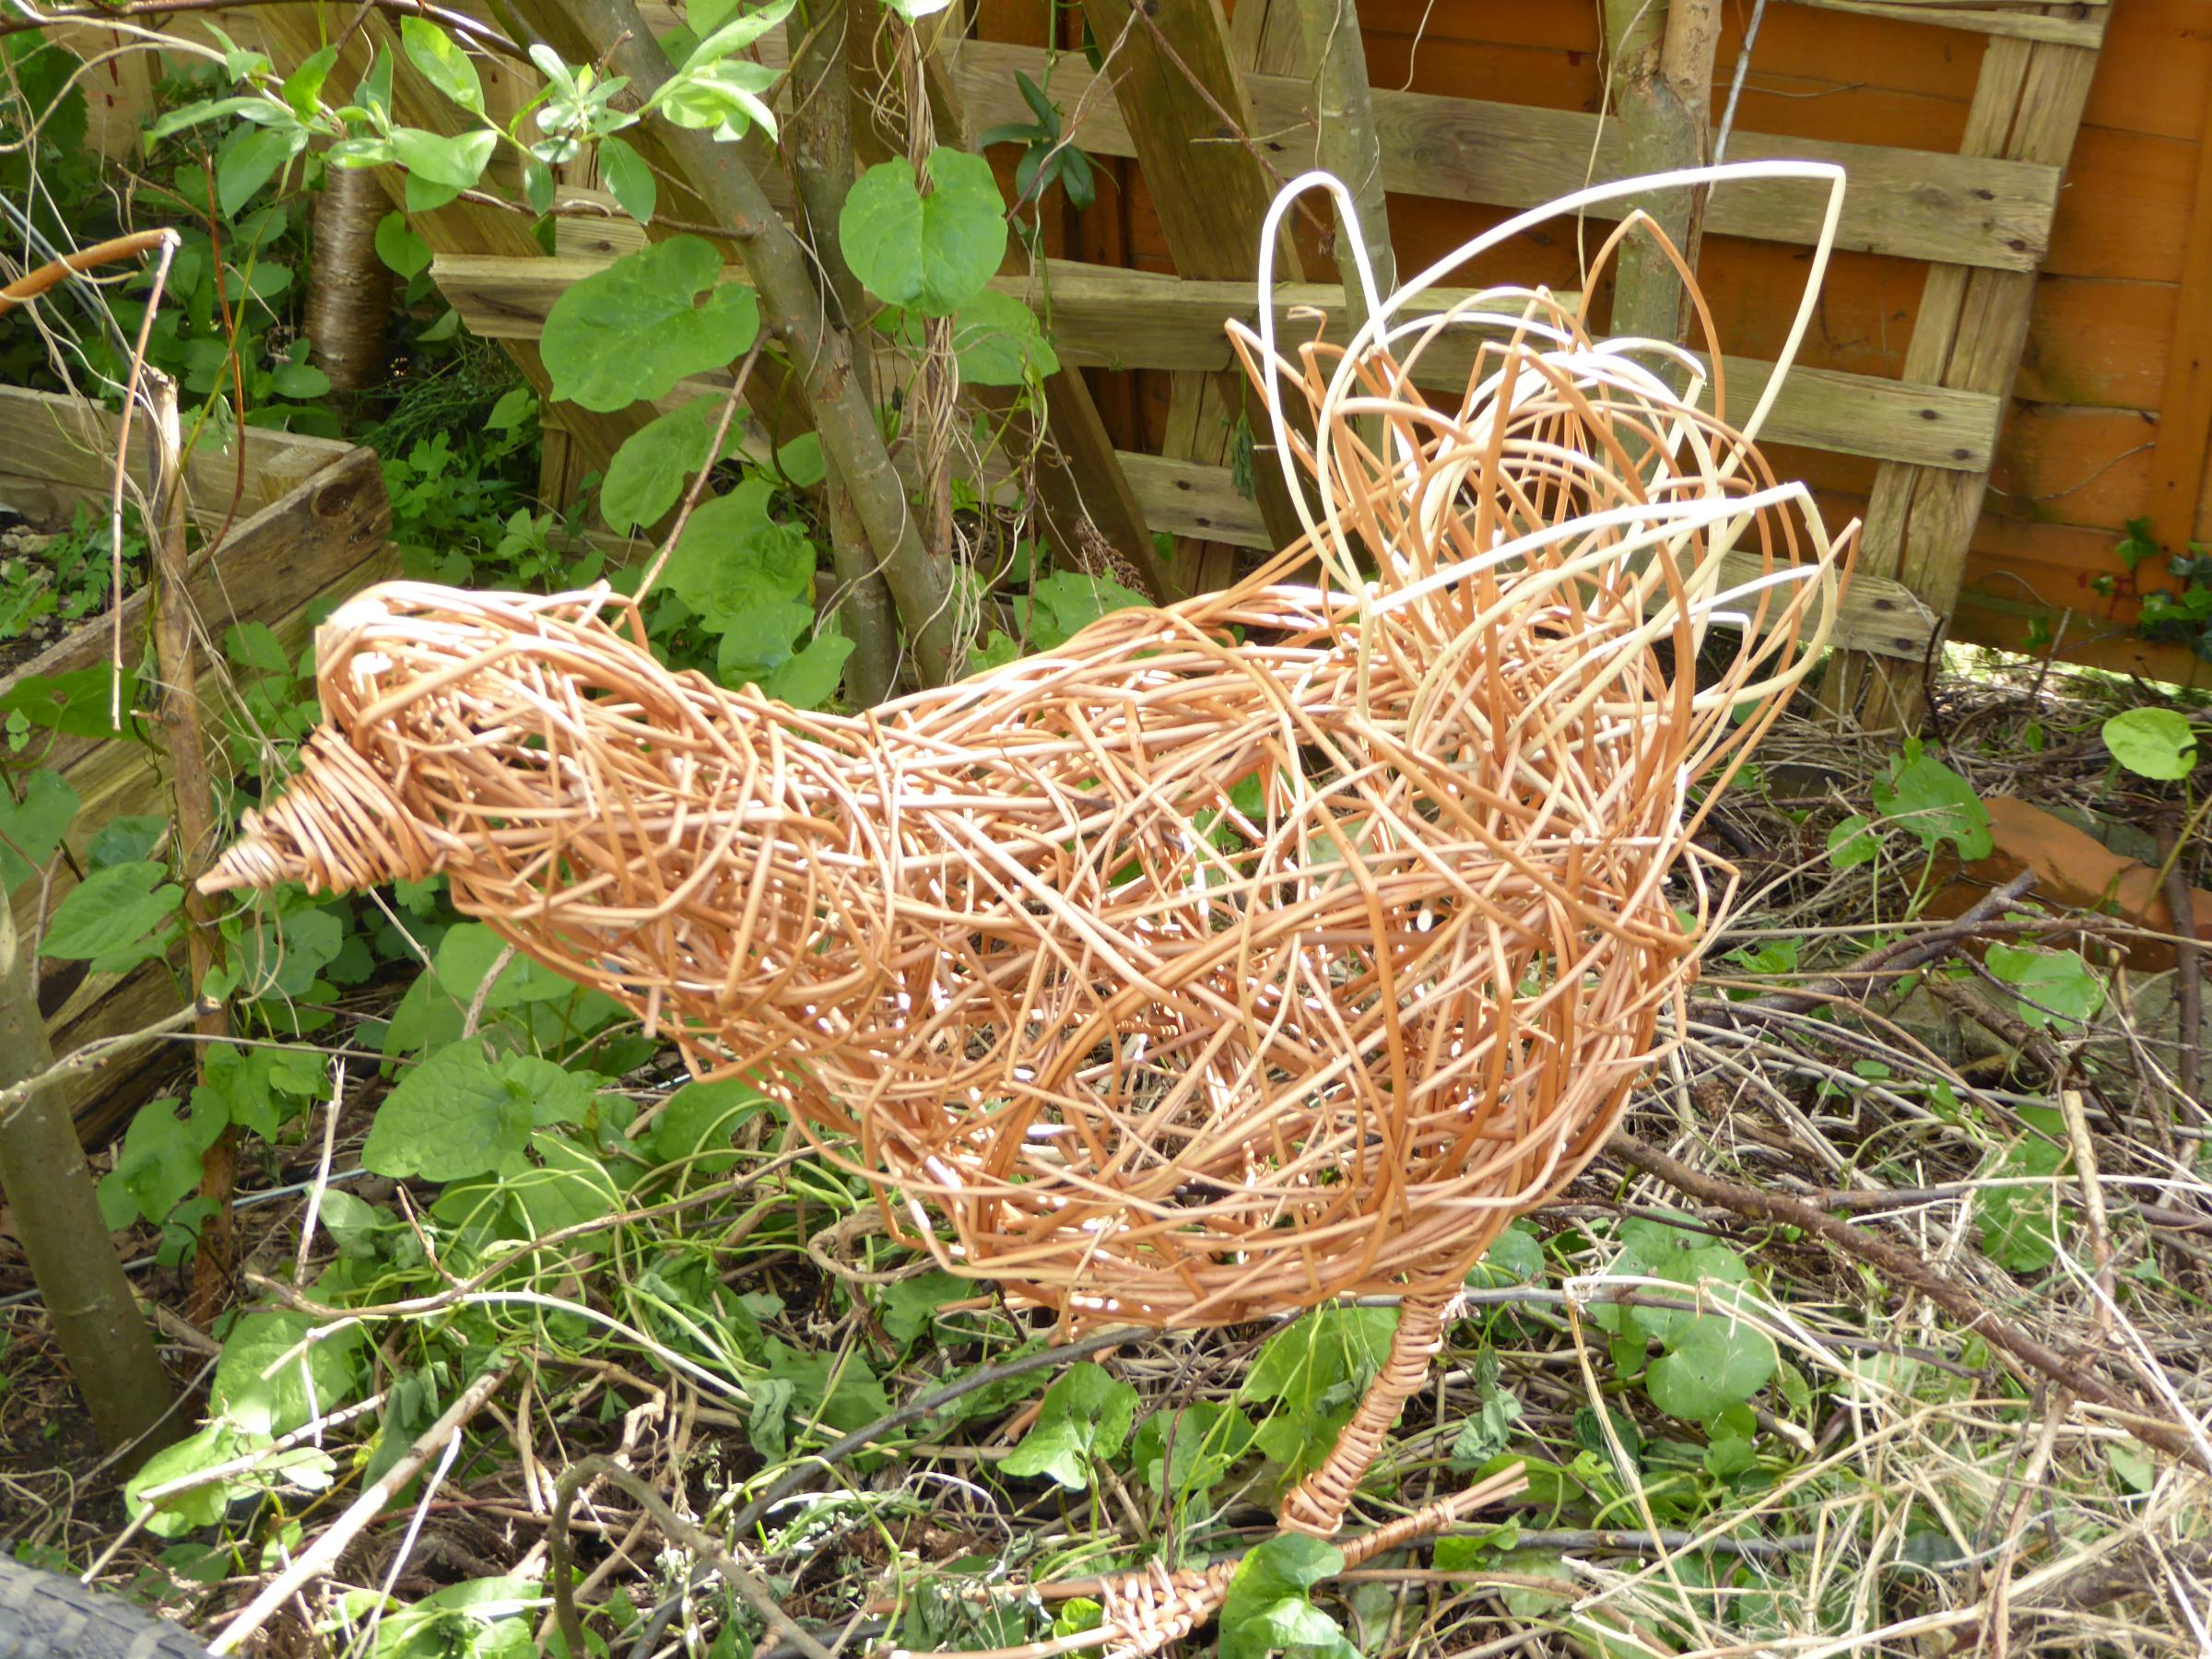 Willow workshops make a chicken or duck